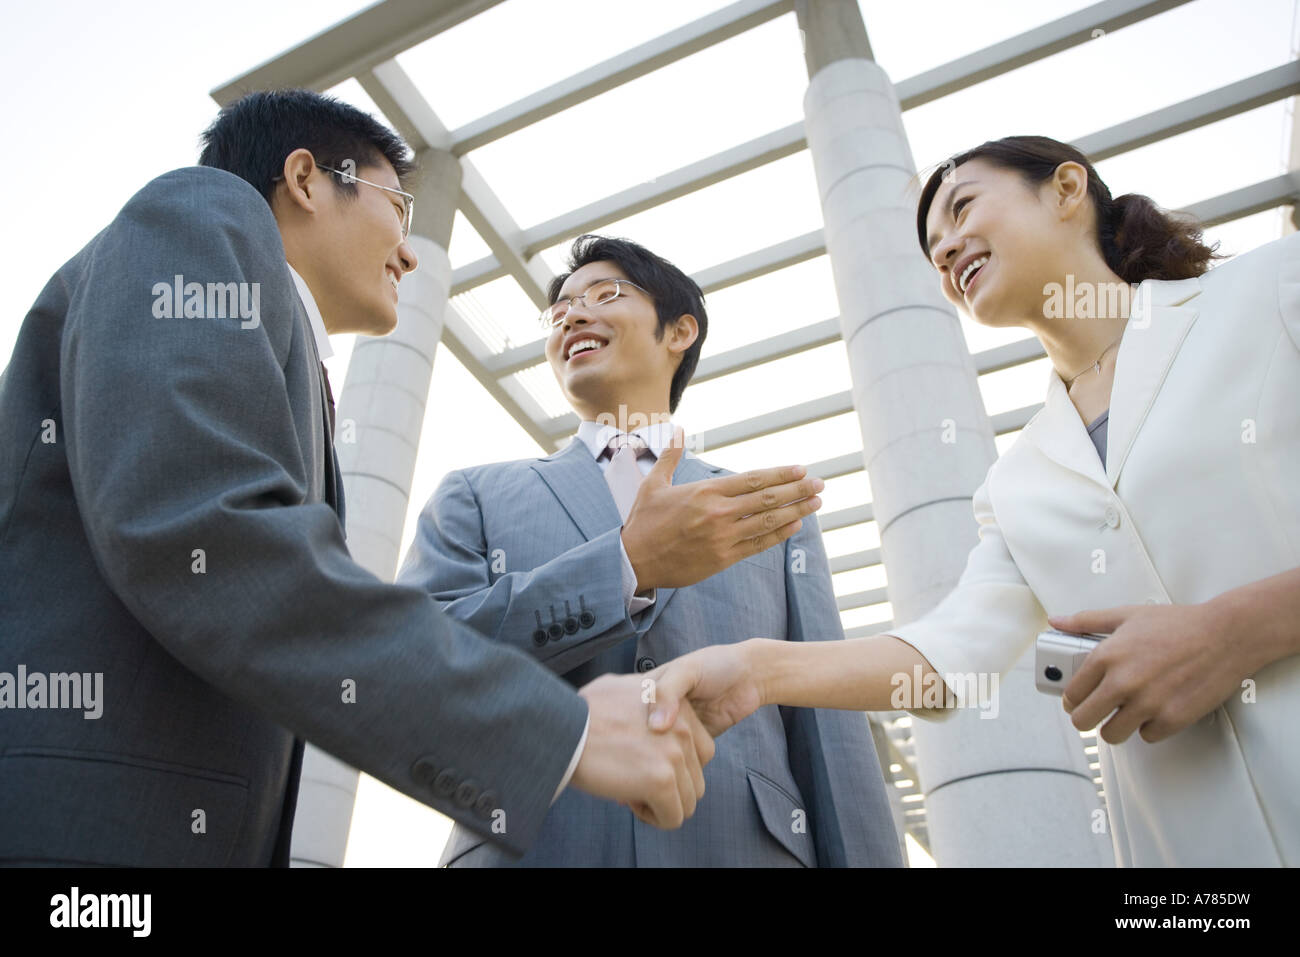 Business executives being introduced, low angle view - Stock Image